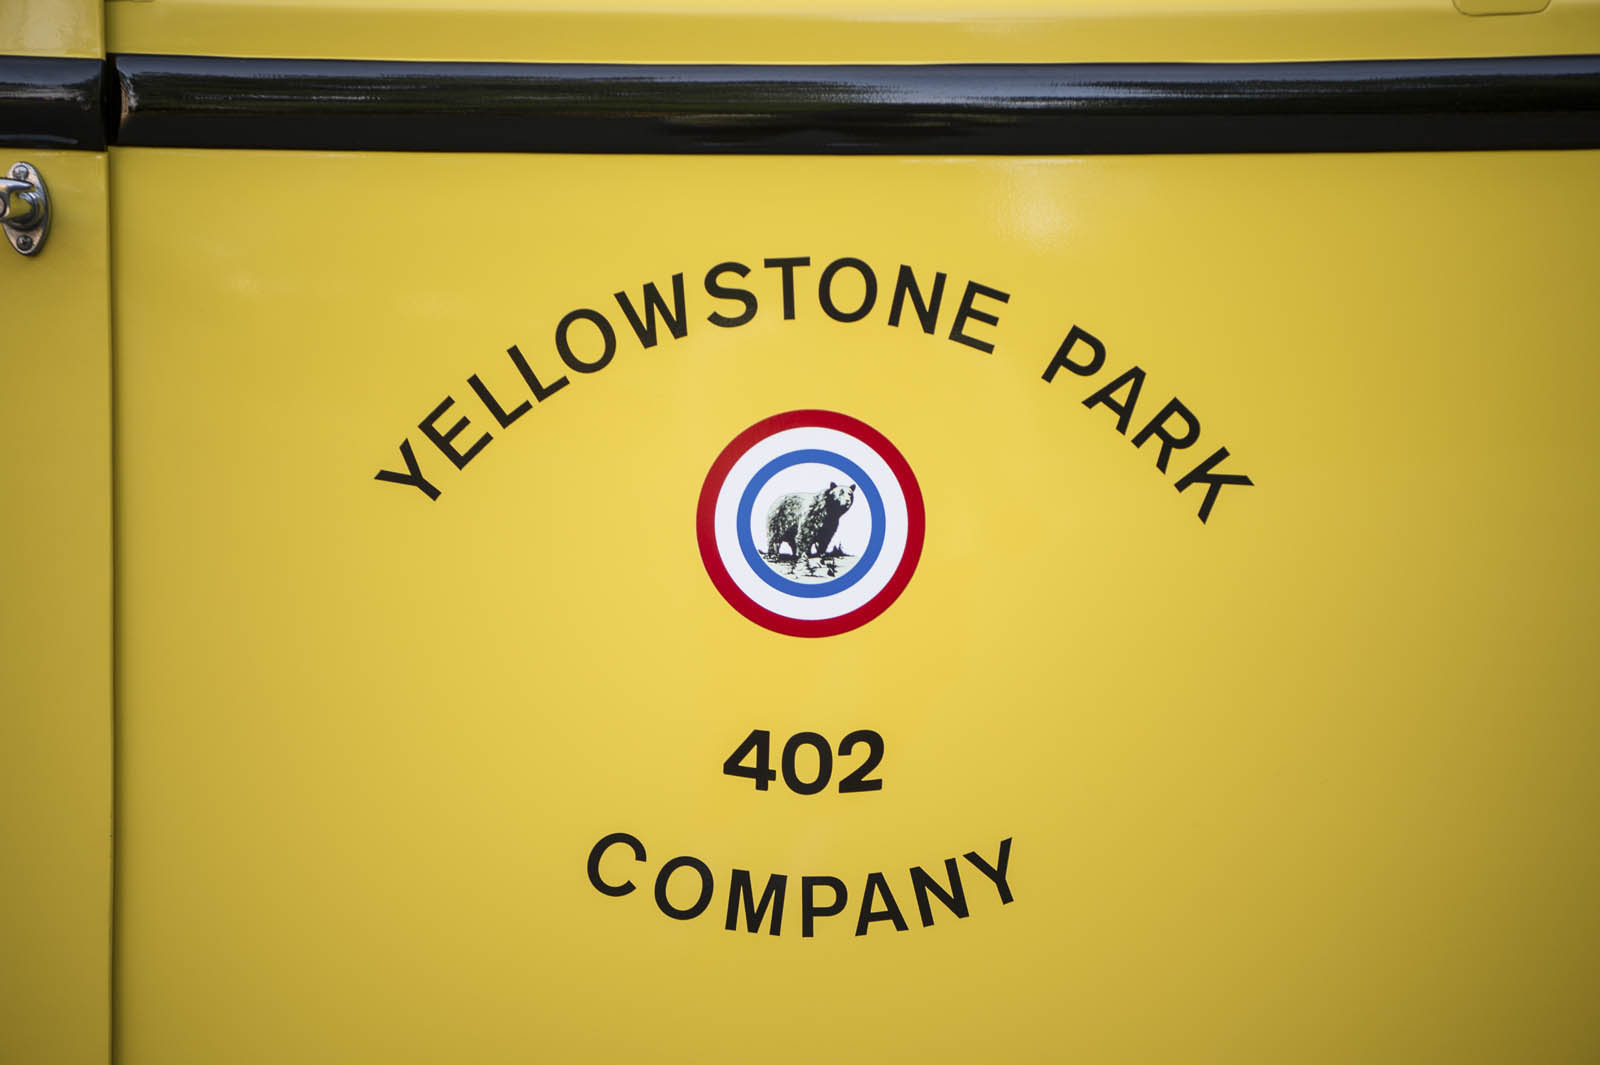 1937-white-yellowstone-bus-3-01.jpg